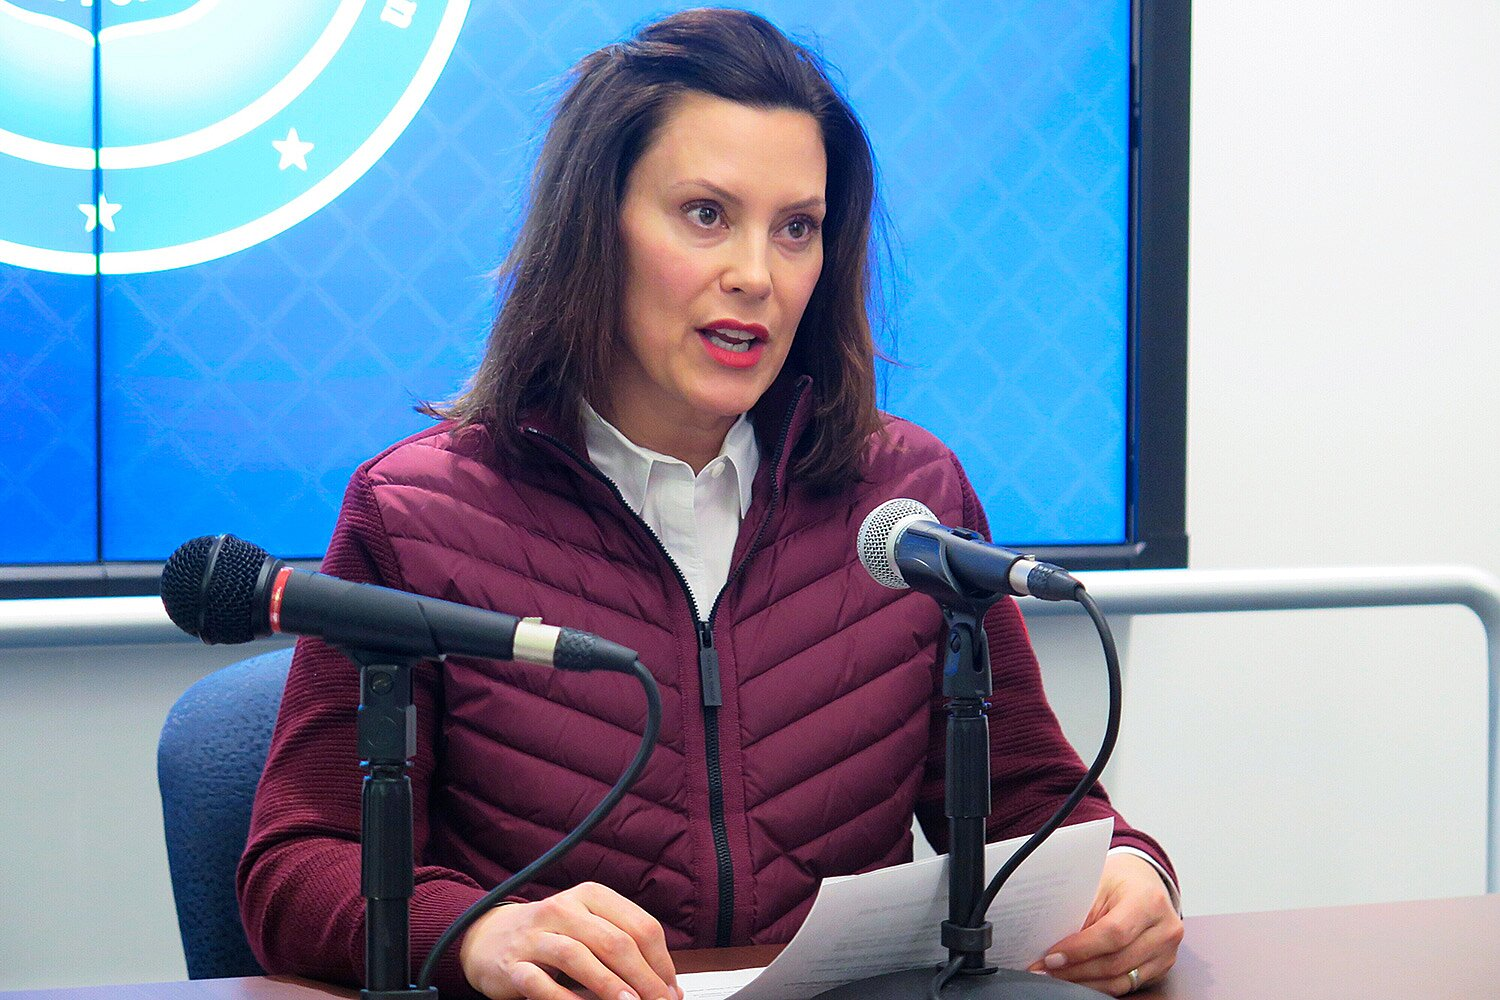 Gretchen Whitmer S Husband Made Pandemic Boat Request People Com